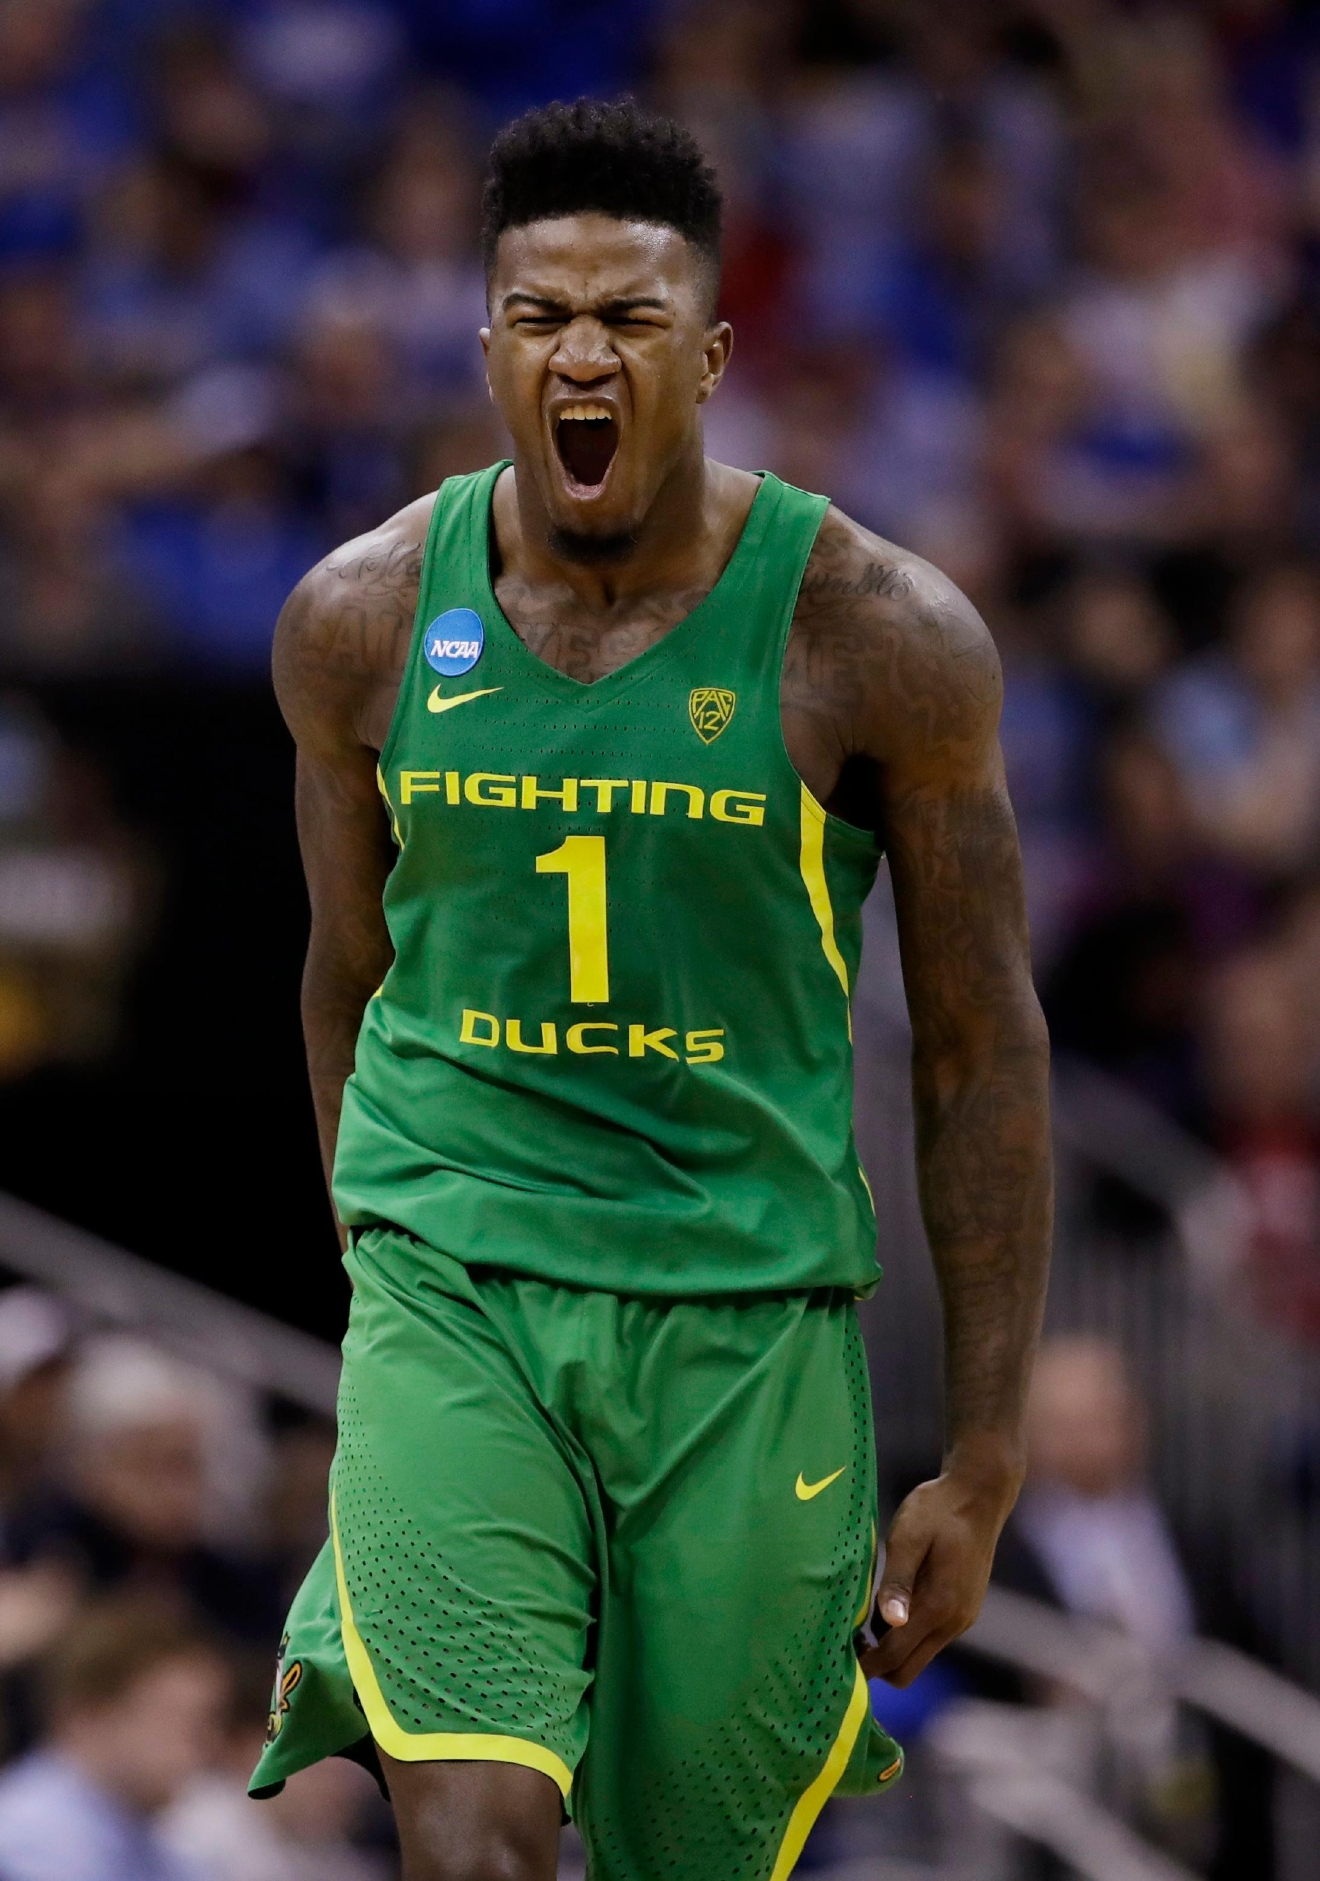 Oregon forward Jordan Bell celebrates during the first half of the team's Midwest Regional final against Kansas in the NCAA men's college basketball tournament, Saturday, March 25, 2017, in Kansas City, Mo. (AP Photo/Charlie Riedel)